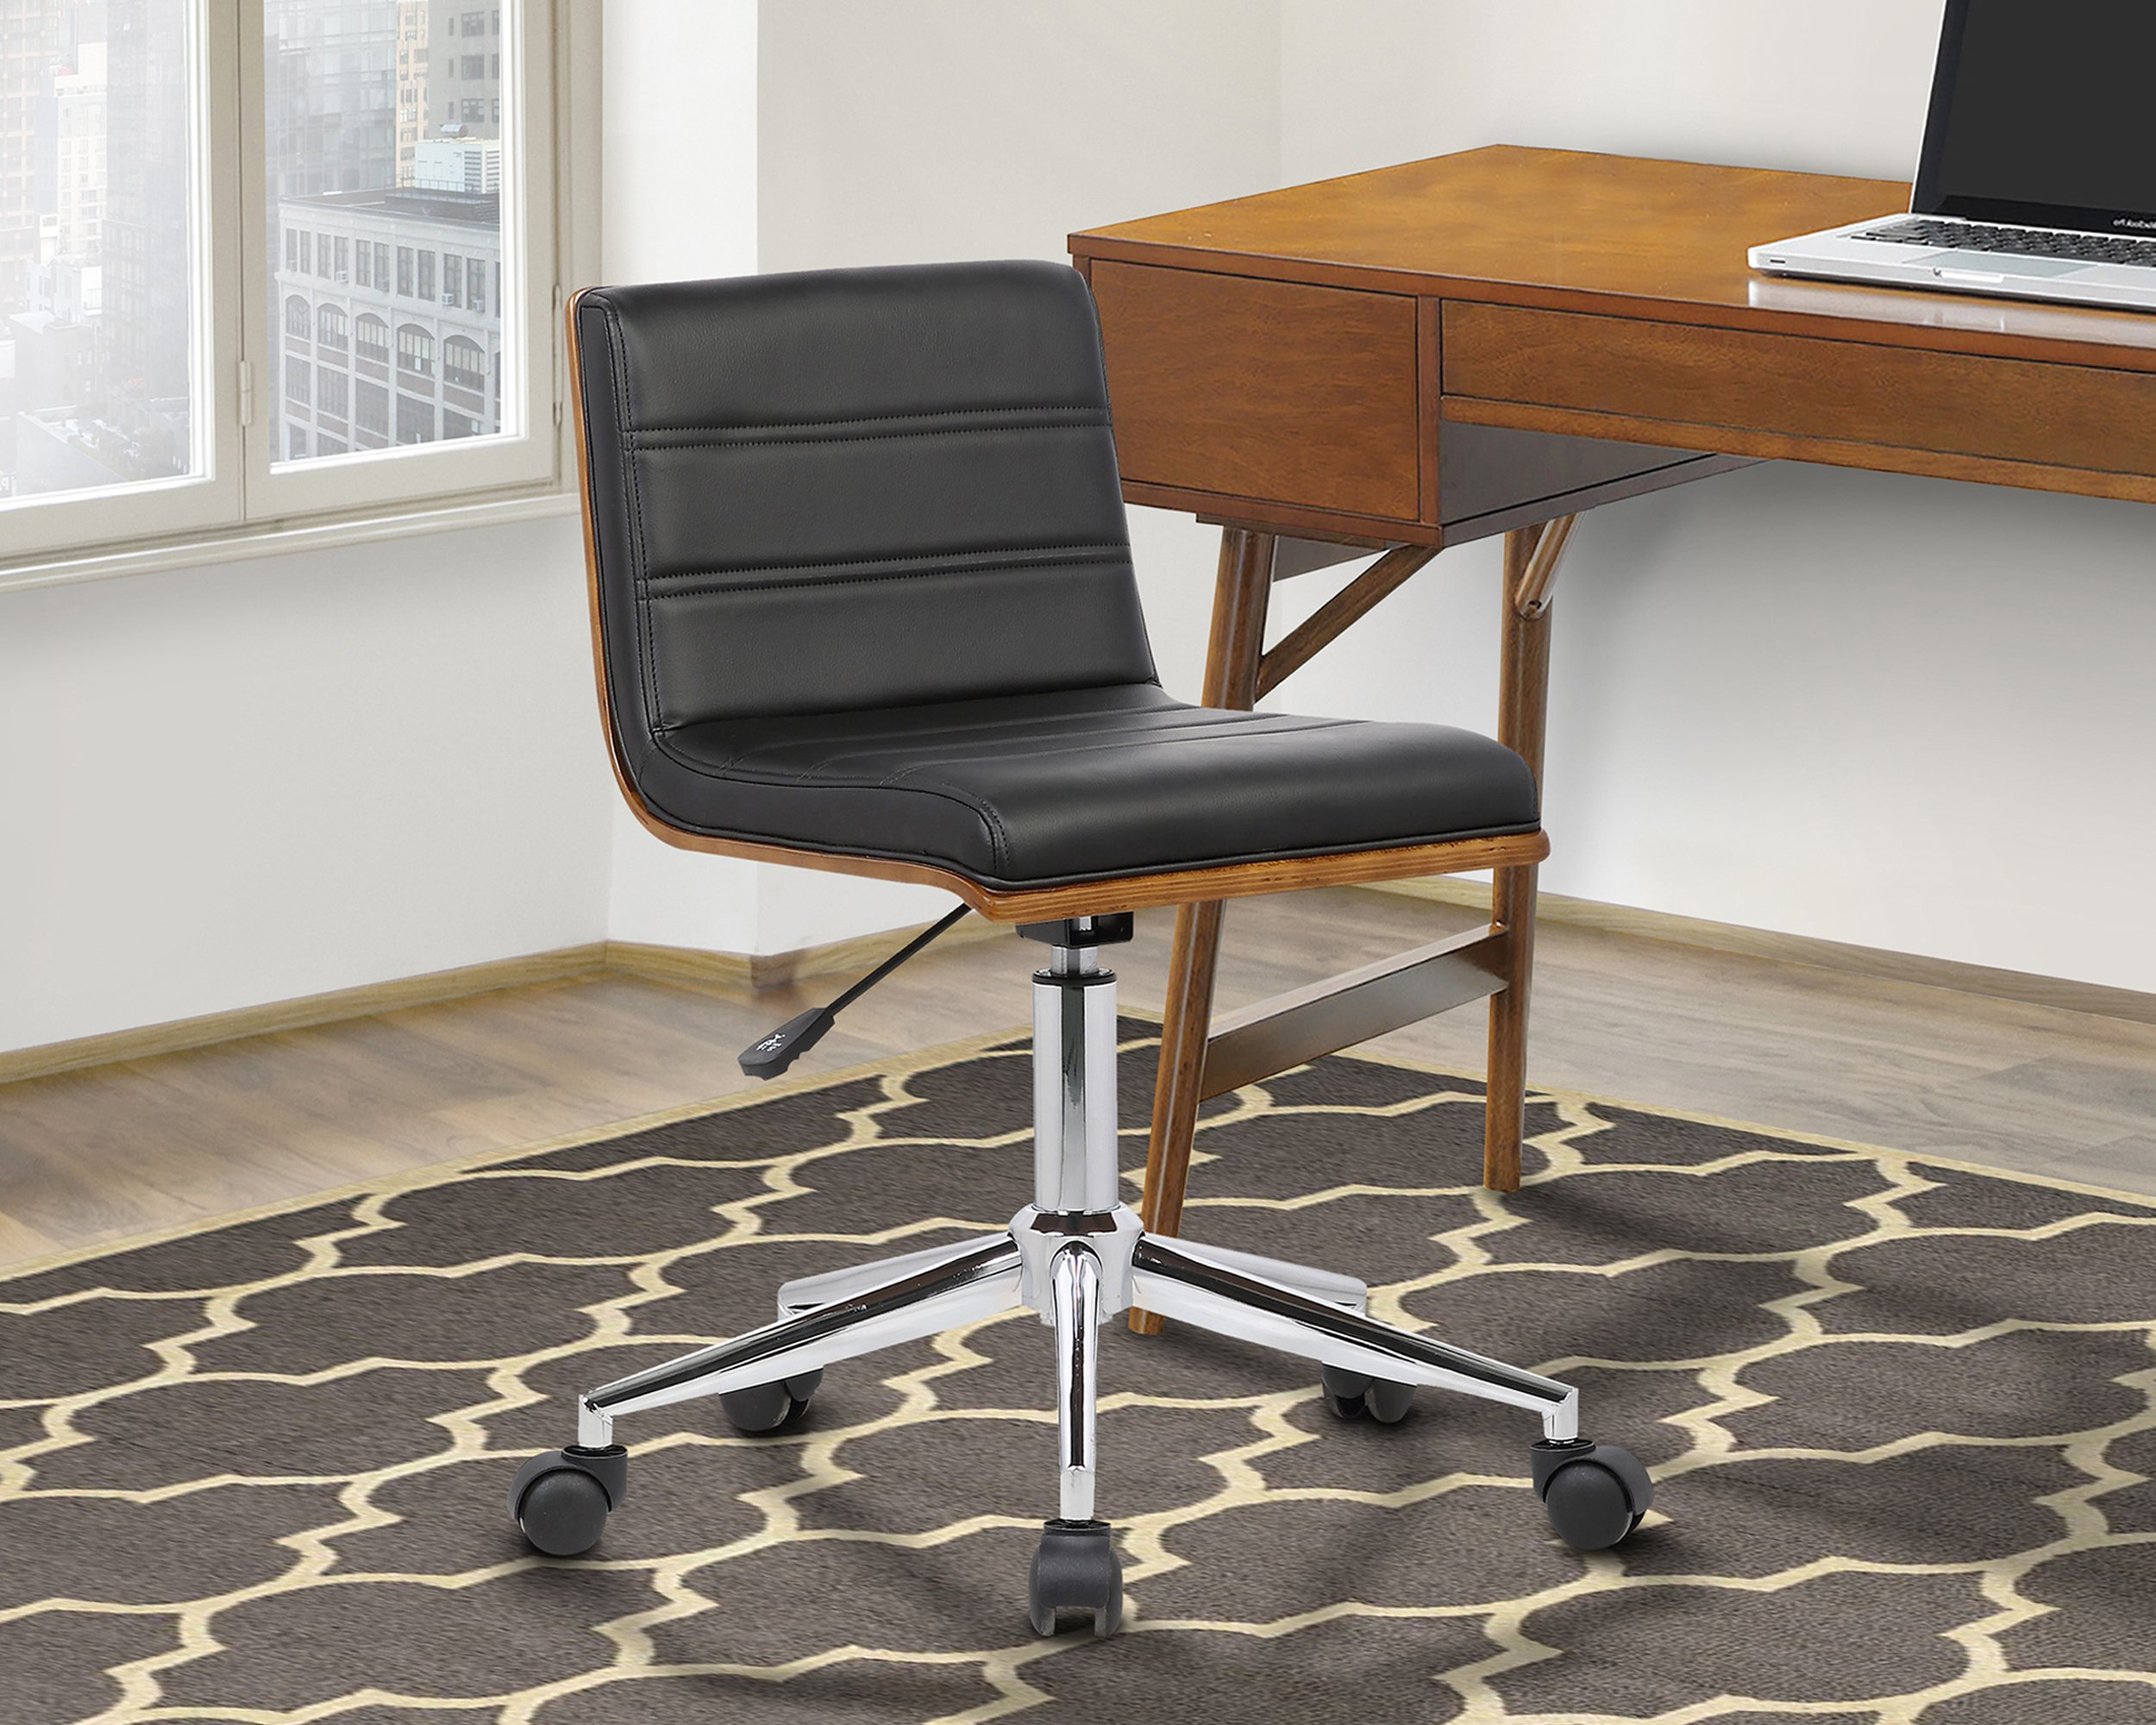 Armen Living LCBOOFCHBLACK Bowie Office Chair in Black Faux Leather and Chrome Finish